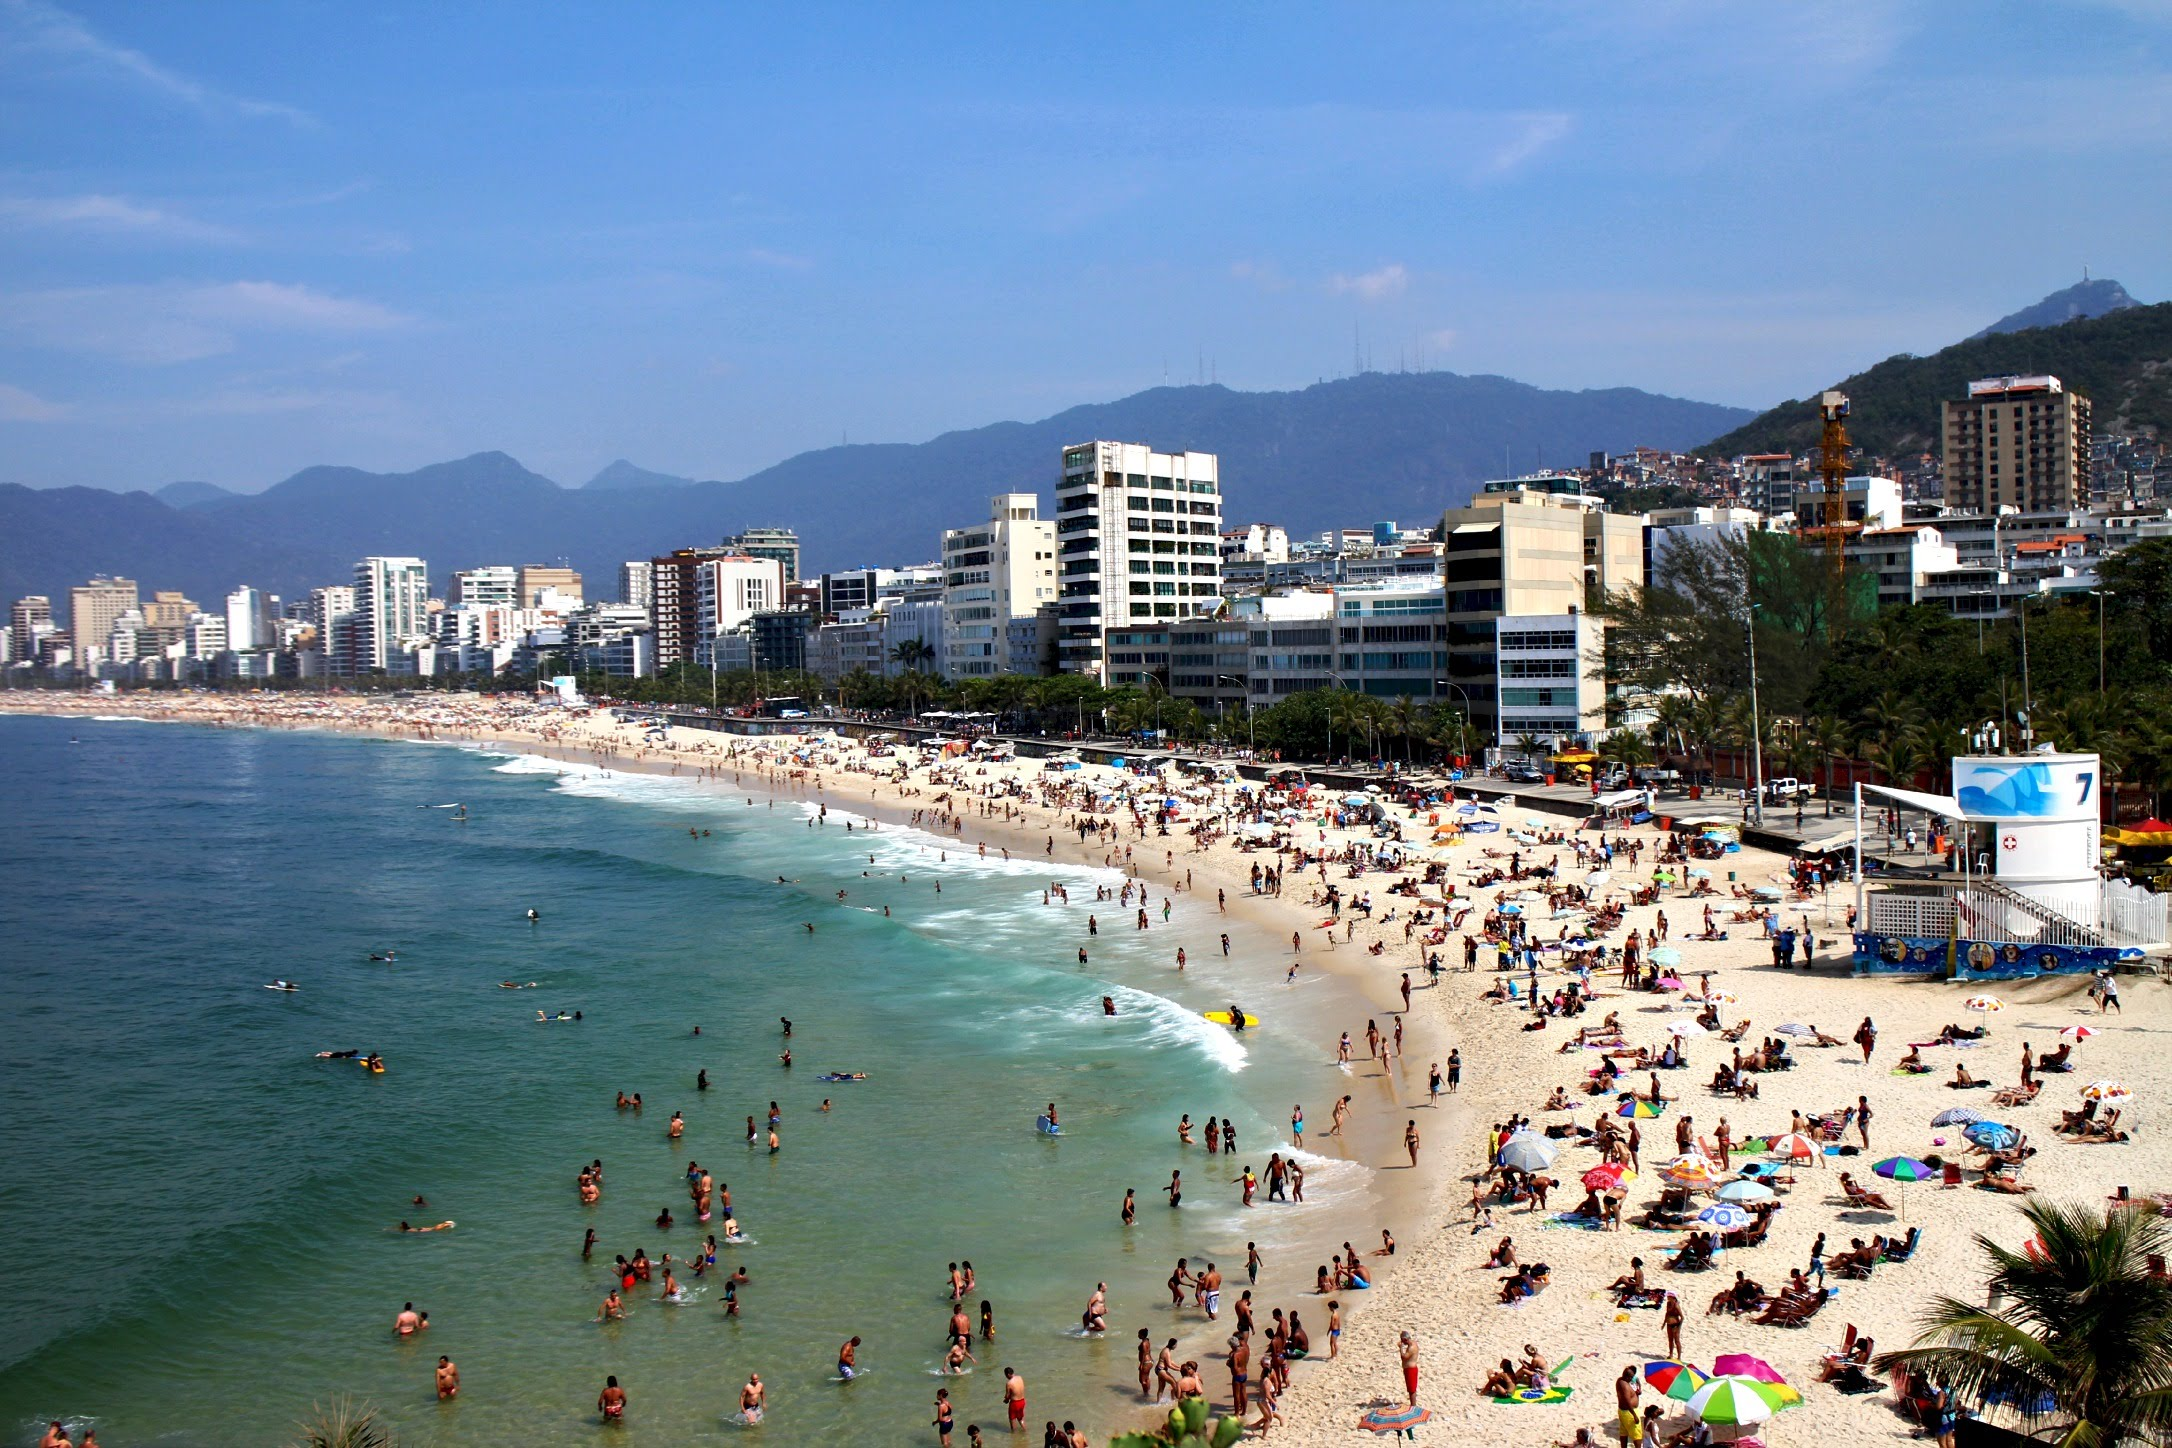 Trip to Ipanema beach, Ipanema beach facts, Ipanema beach Pictures